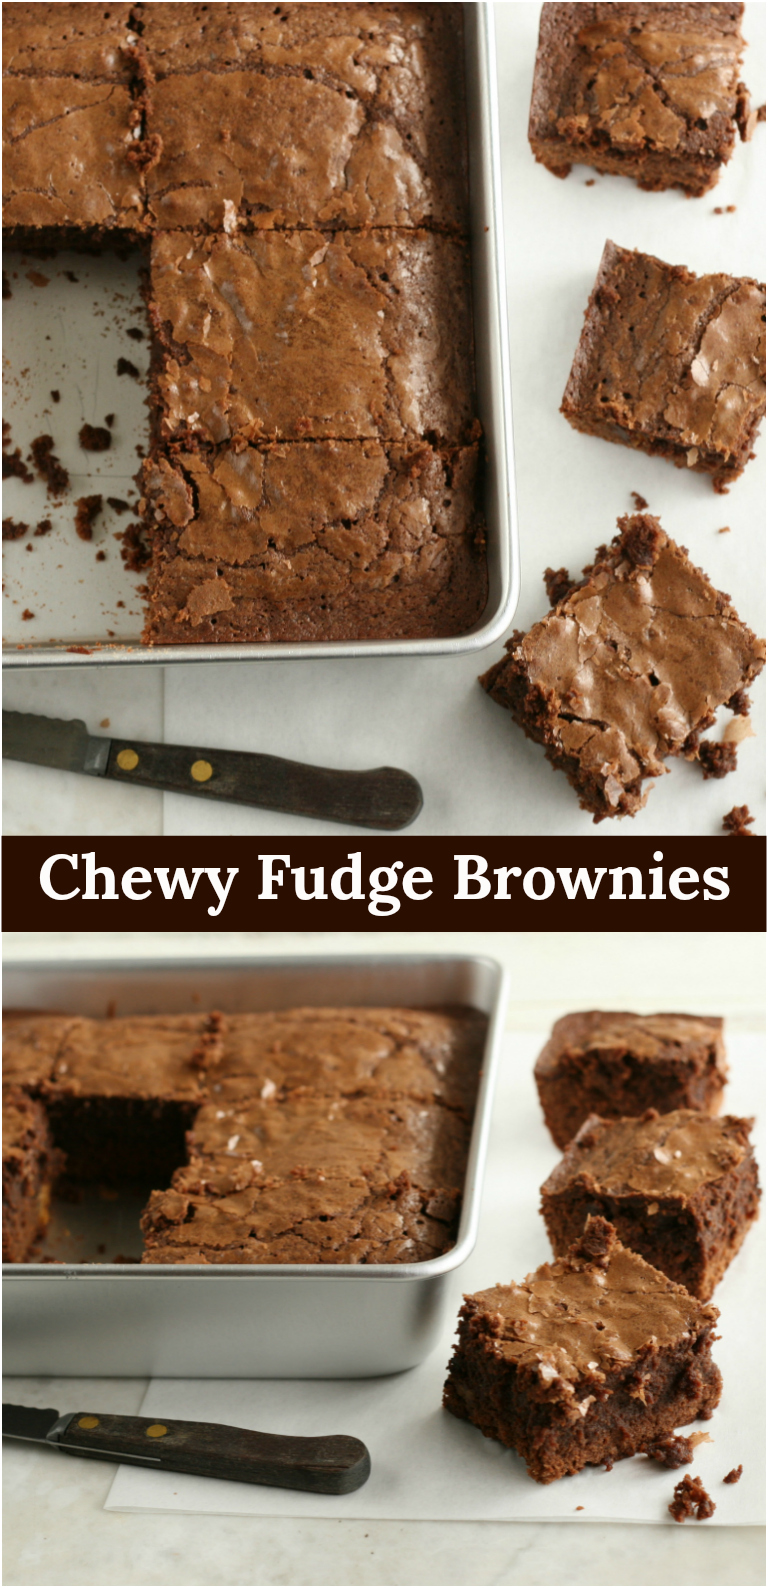 Chewy Fudge Brownies with a glossy flaky top are easy to make! #recipe #fudgebrownies #foodblogger #chocolate